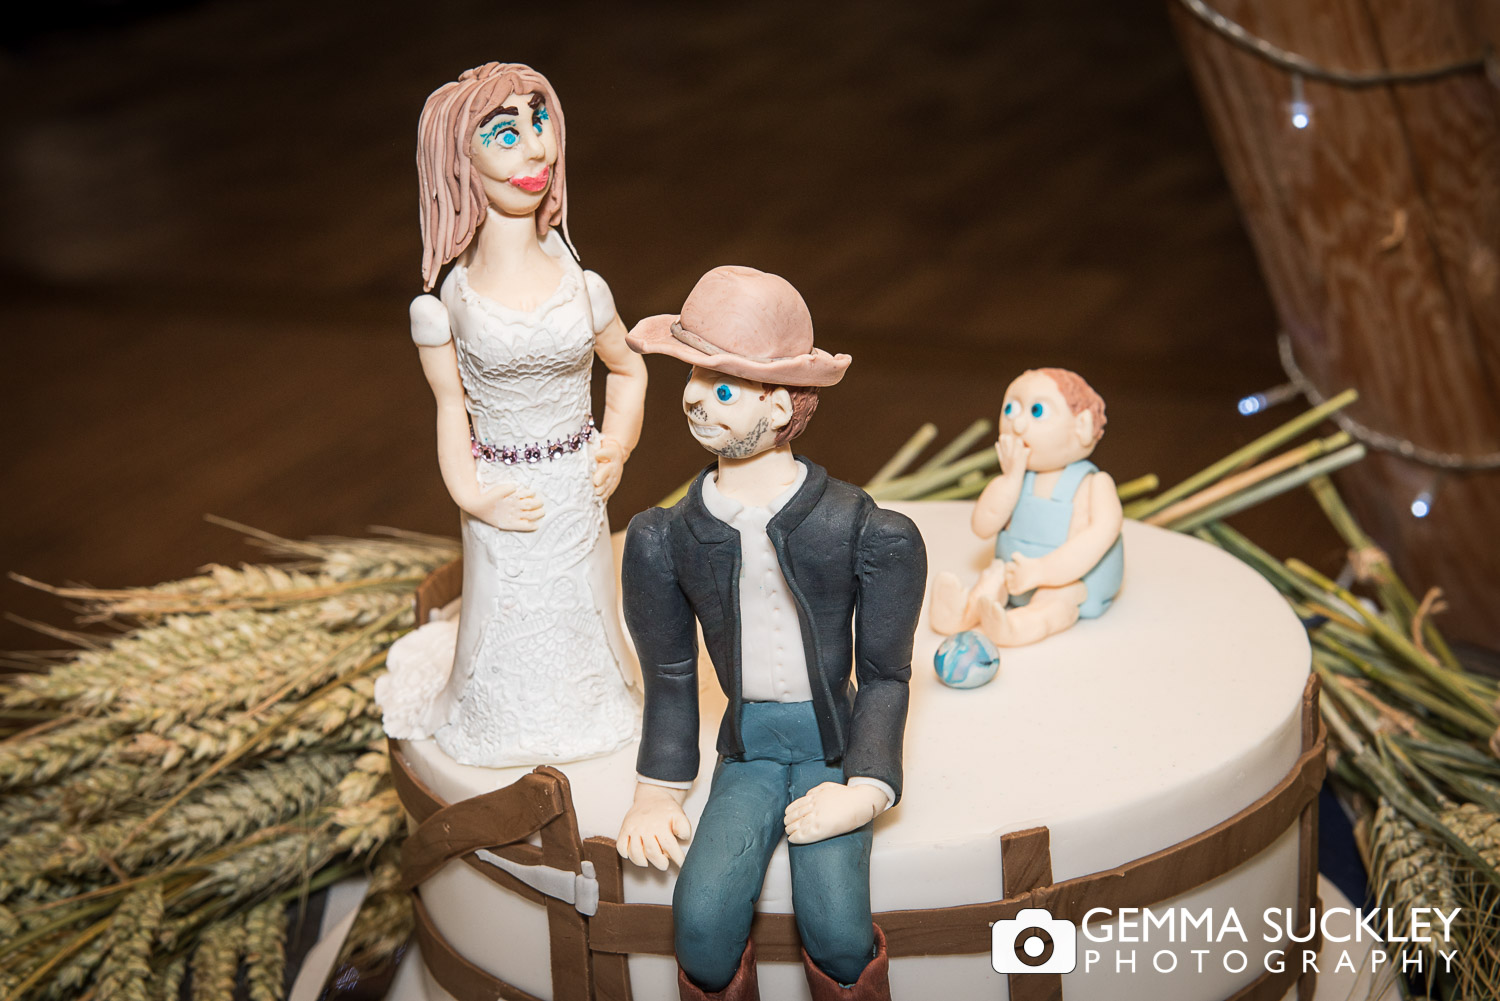 themed wedding cake of bride and groom